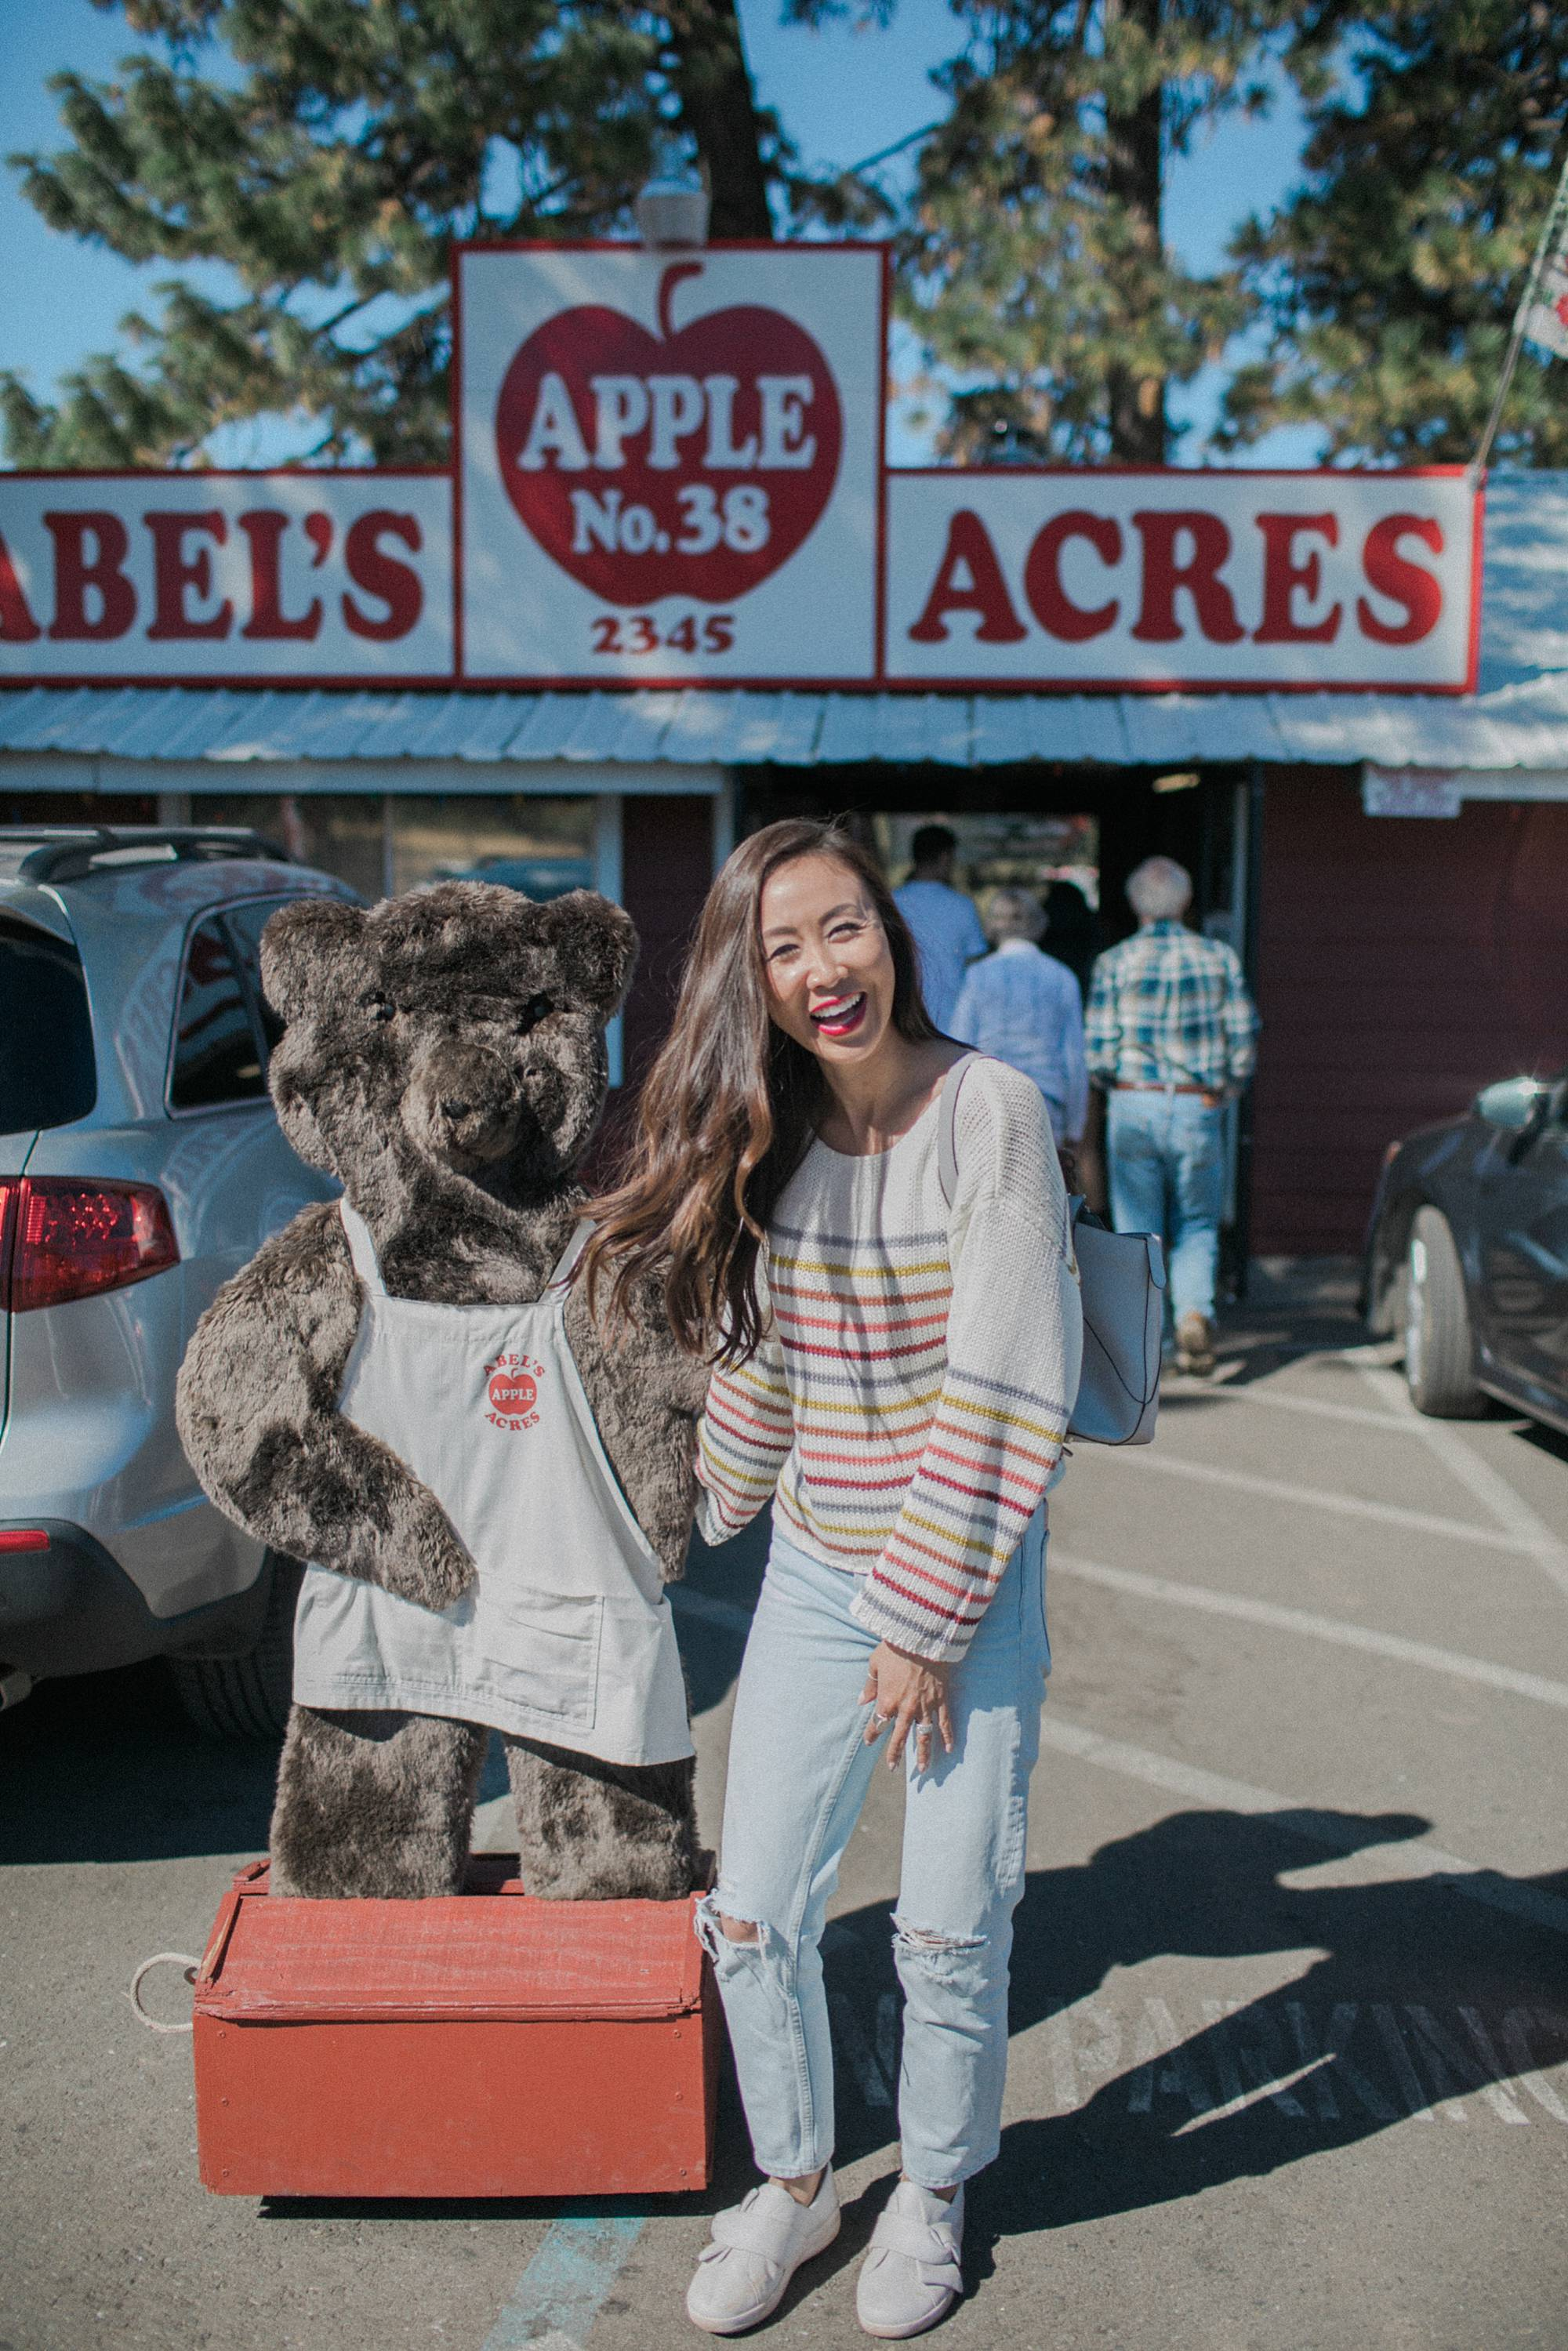 Mabel's apple's at apple hill the famous bears